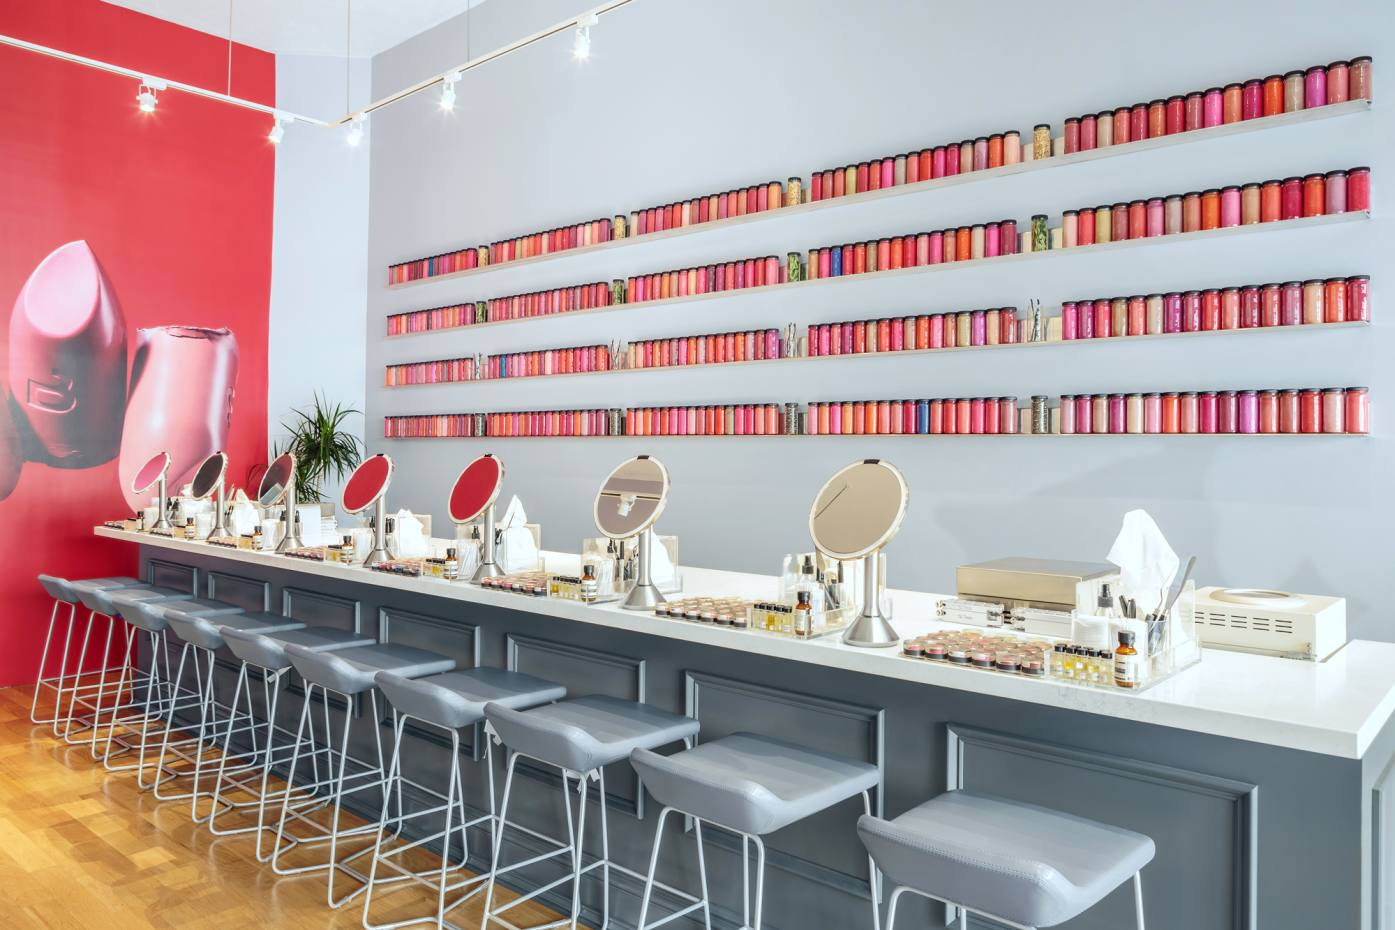 Lip Lab by Bite's Pacific Heights location in San Francisco